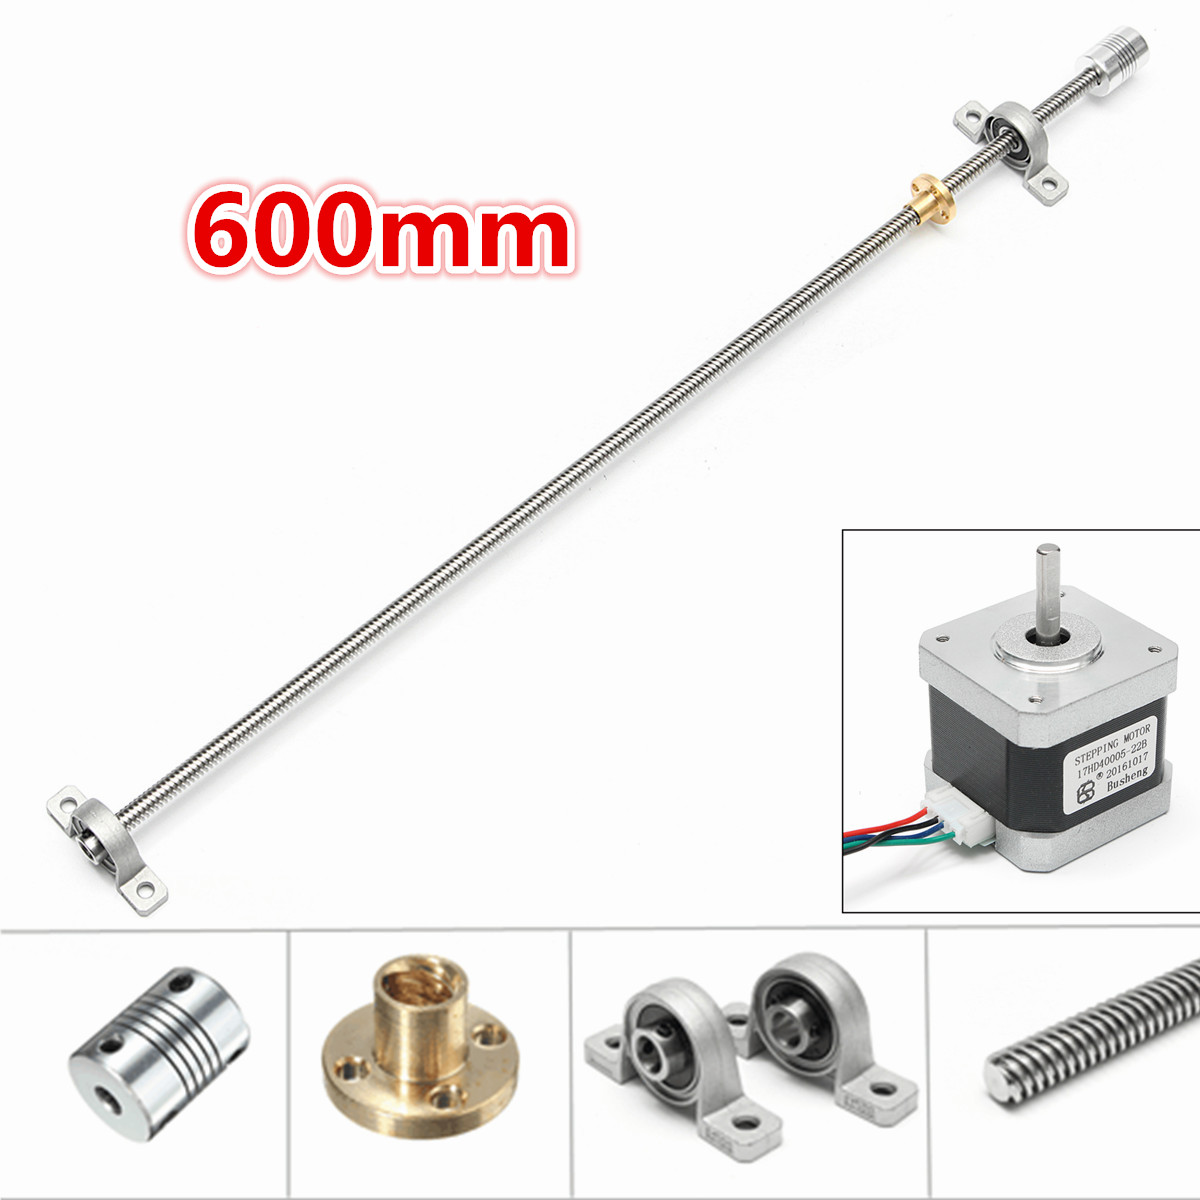 600mm T8 Lead screw + 8mm Screw nut + KFL08 Mounted ball bearing + Shaft coupling + Motor Set for 3D Printer Parts NEW t8 1000mm stainless steel lead screw with screw nut kfl08 mounted ball bearing shaft coupling motor set 3d printer accessories